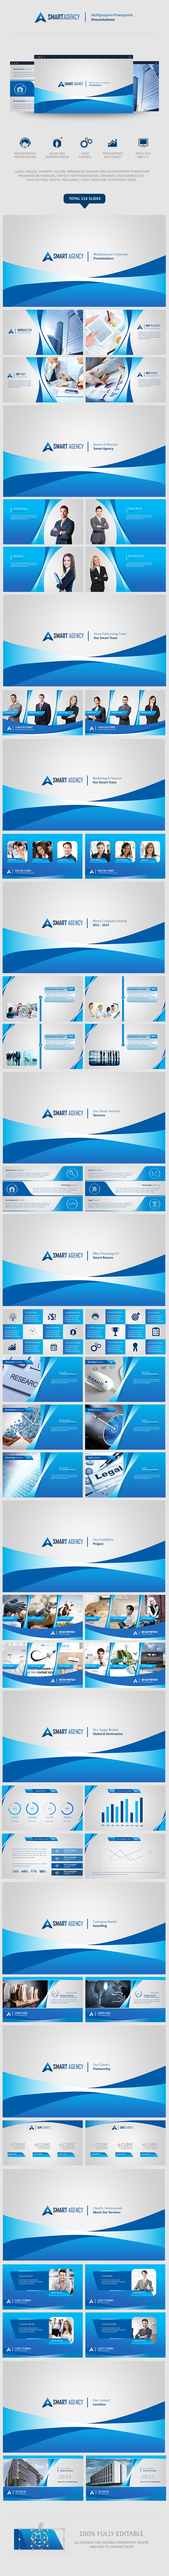 GraphicRiver SMART AGENCY Powerpoint Presentations 10928933